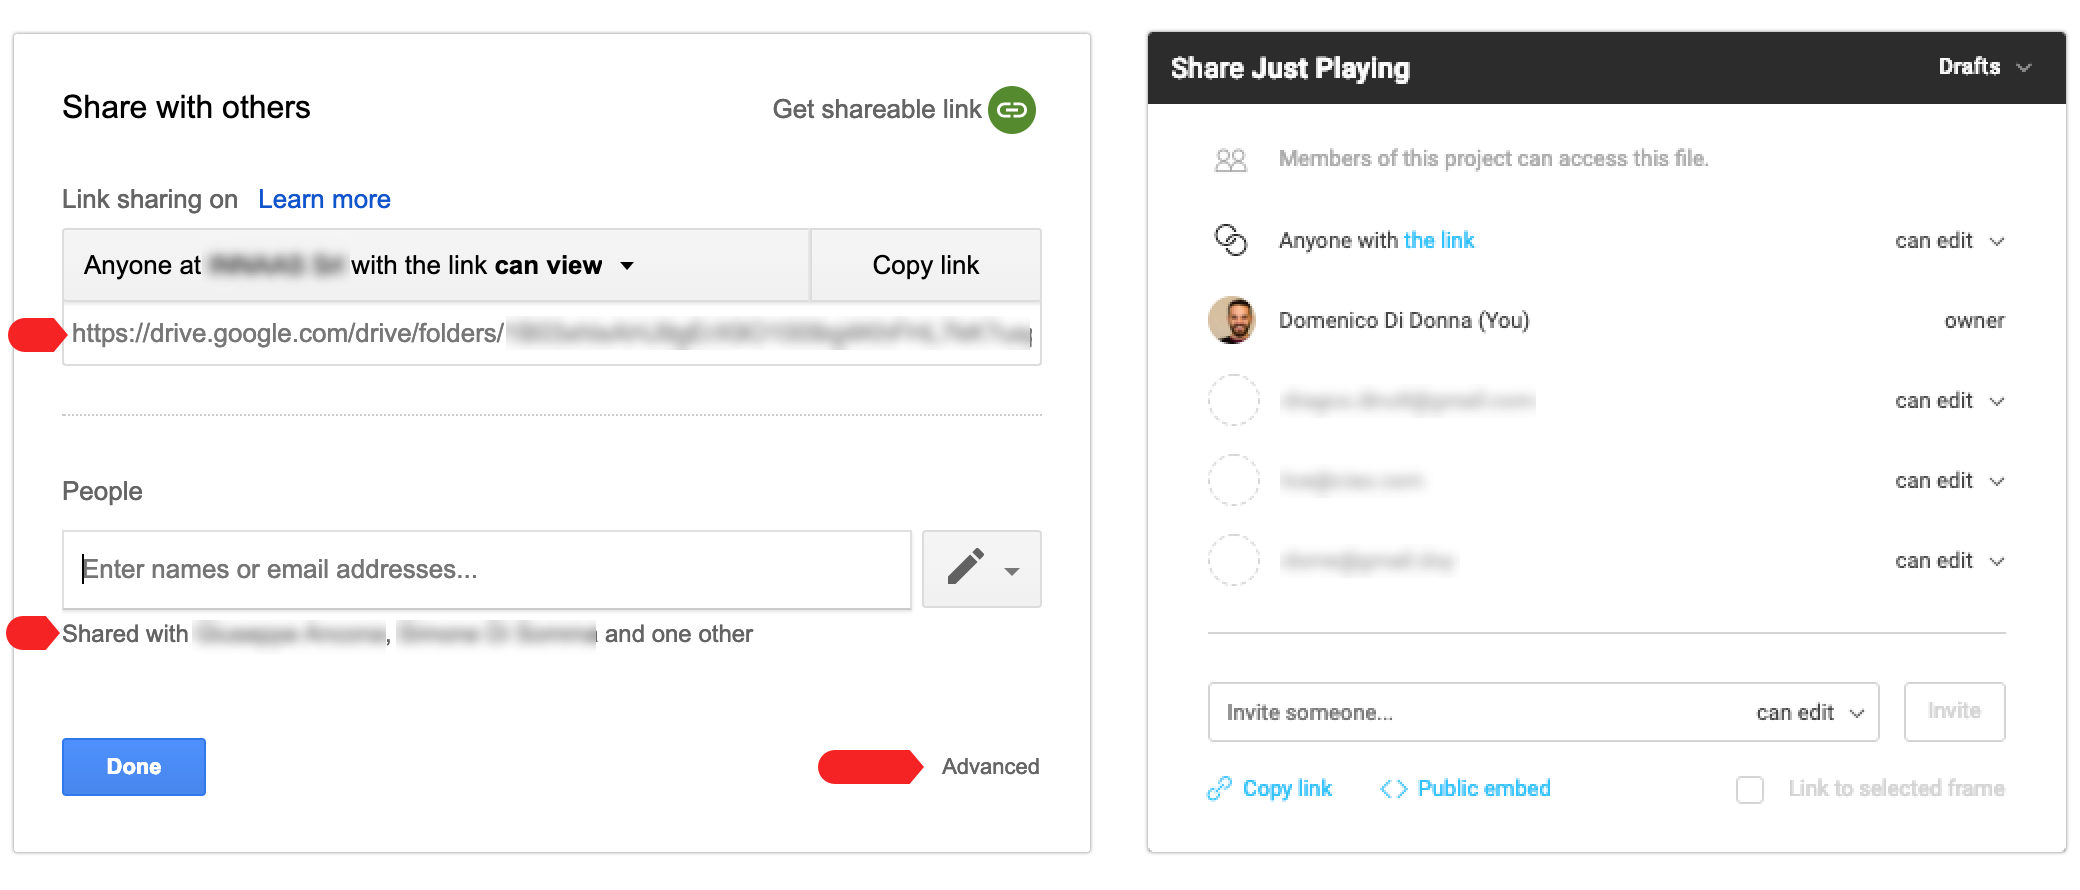 The design of a sharing modal